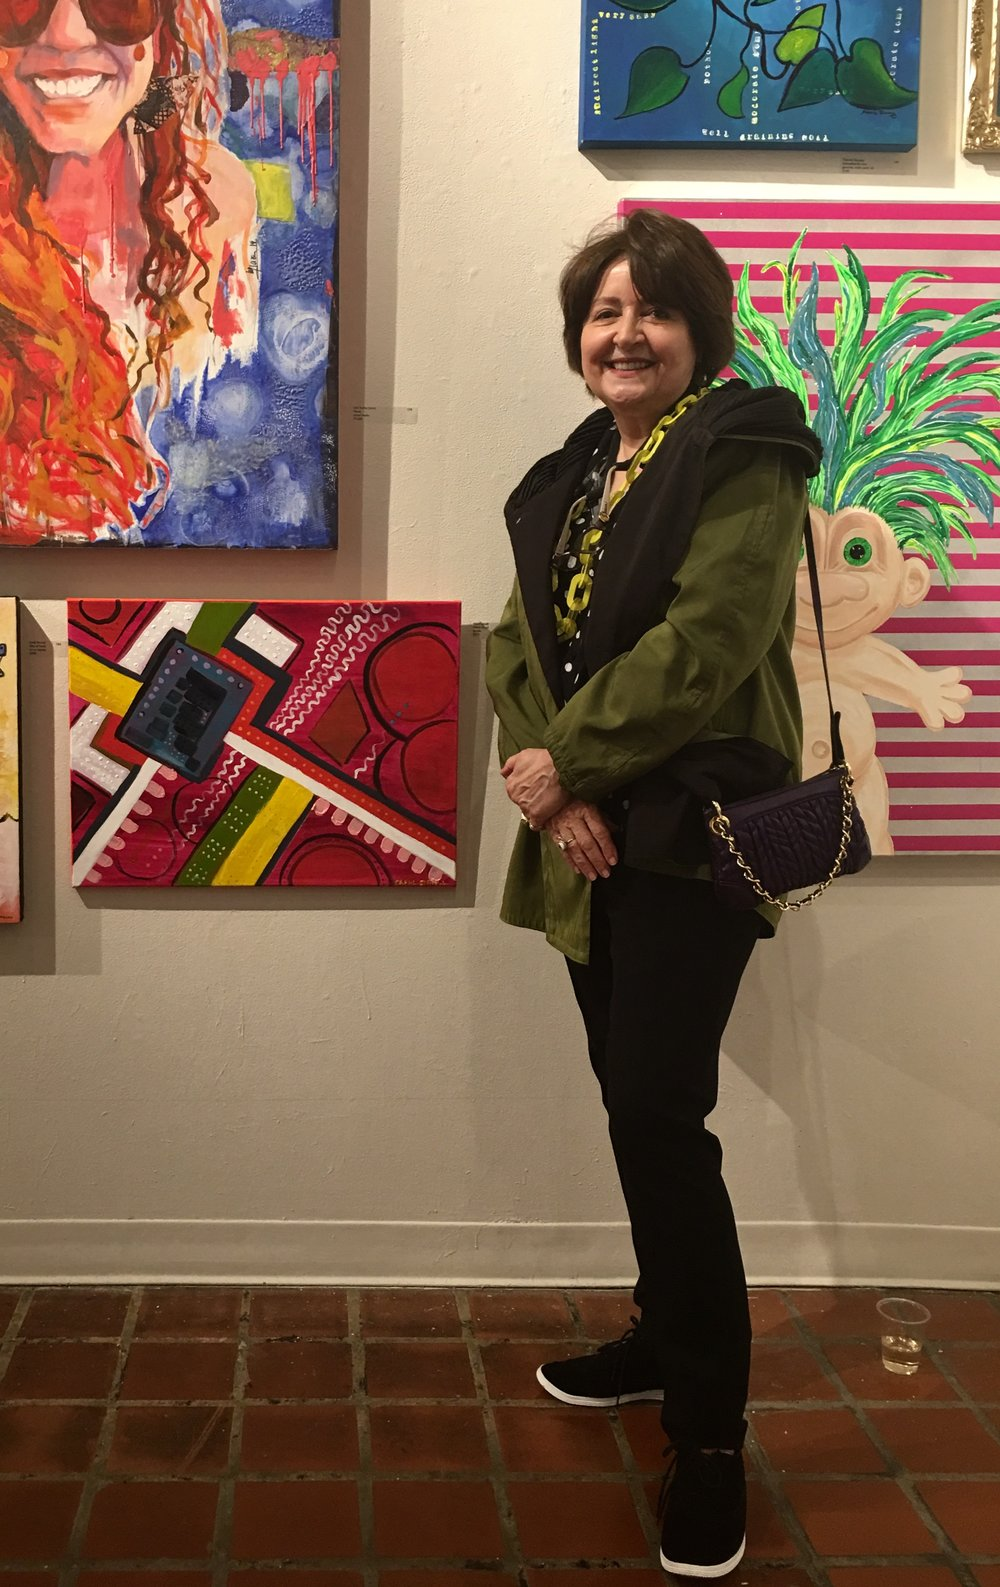 """Me and my painting tonight (May 17, 2018) at the Pre-Jury Viewing Party for the exhibition FRESH at ArtSpace. Mine is at the lower left in the photo, and presently is located in the first floor exhibition room at ArtSpace. It is called """"Which Way,"""" 18 x 24, acrylic on canvas and will show at ArtSpace through May 26. After that, Jennifer Dasal, Associate Curator of Contemporary Art at the NC Museum of Art, will select a few for an exhibition running June 1-29. I'm not counting on that, so if you want to see my painting at ArtSpace, get there by May 26! Meanwhile, all work sold raises funds for the ArtSpace Inspiration Fund - at least 50% of the proceeds of sales. And all work in the preview show, whether juried in or not, is already available for sale at  bit.ly/artspacefreshlook2018 . I enjoyed looking at over 200 donated works this evening."""